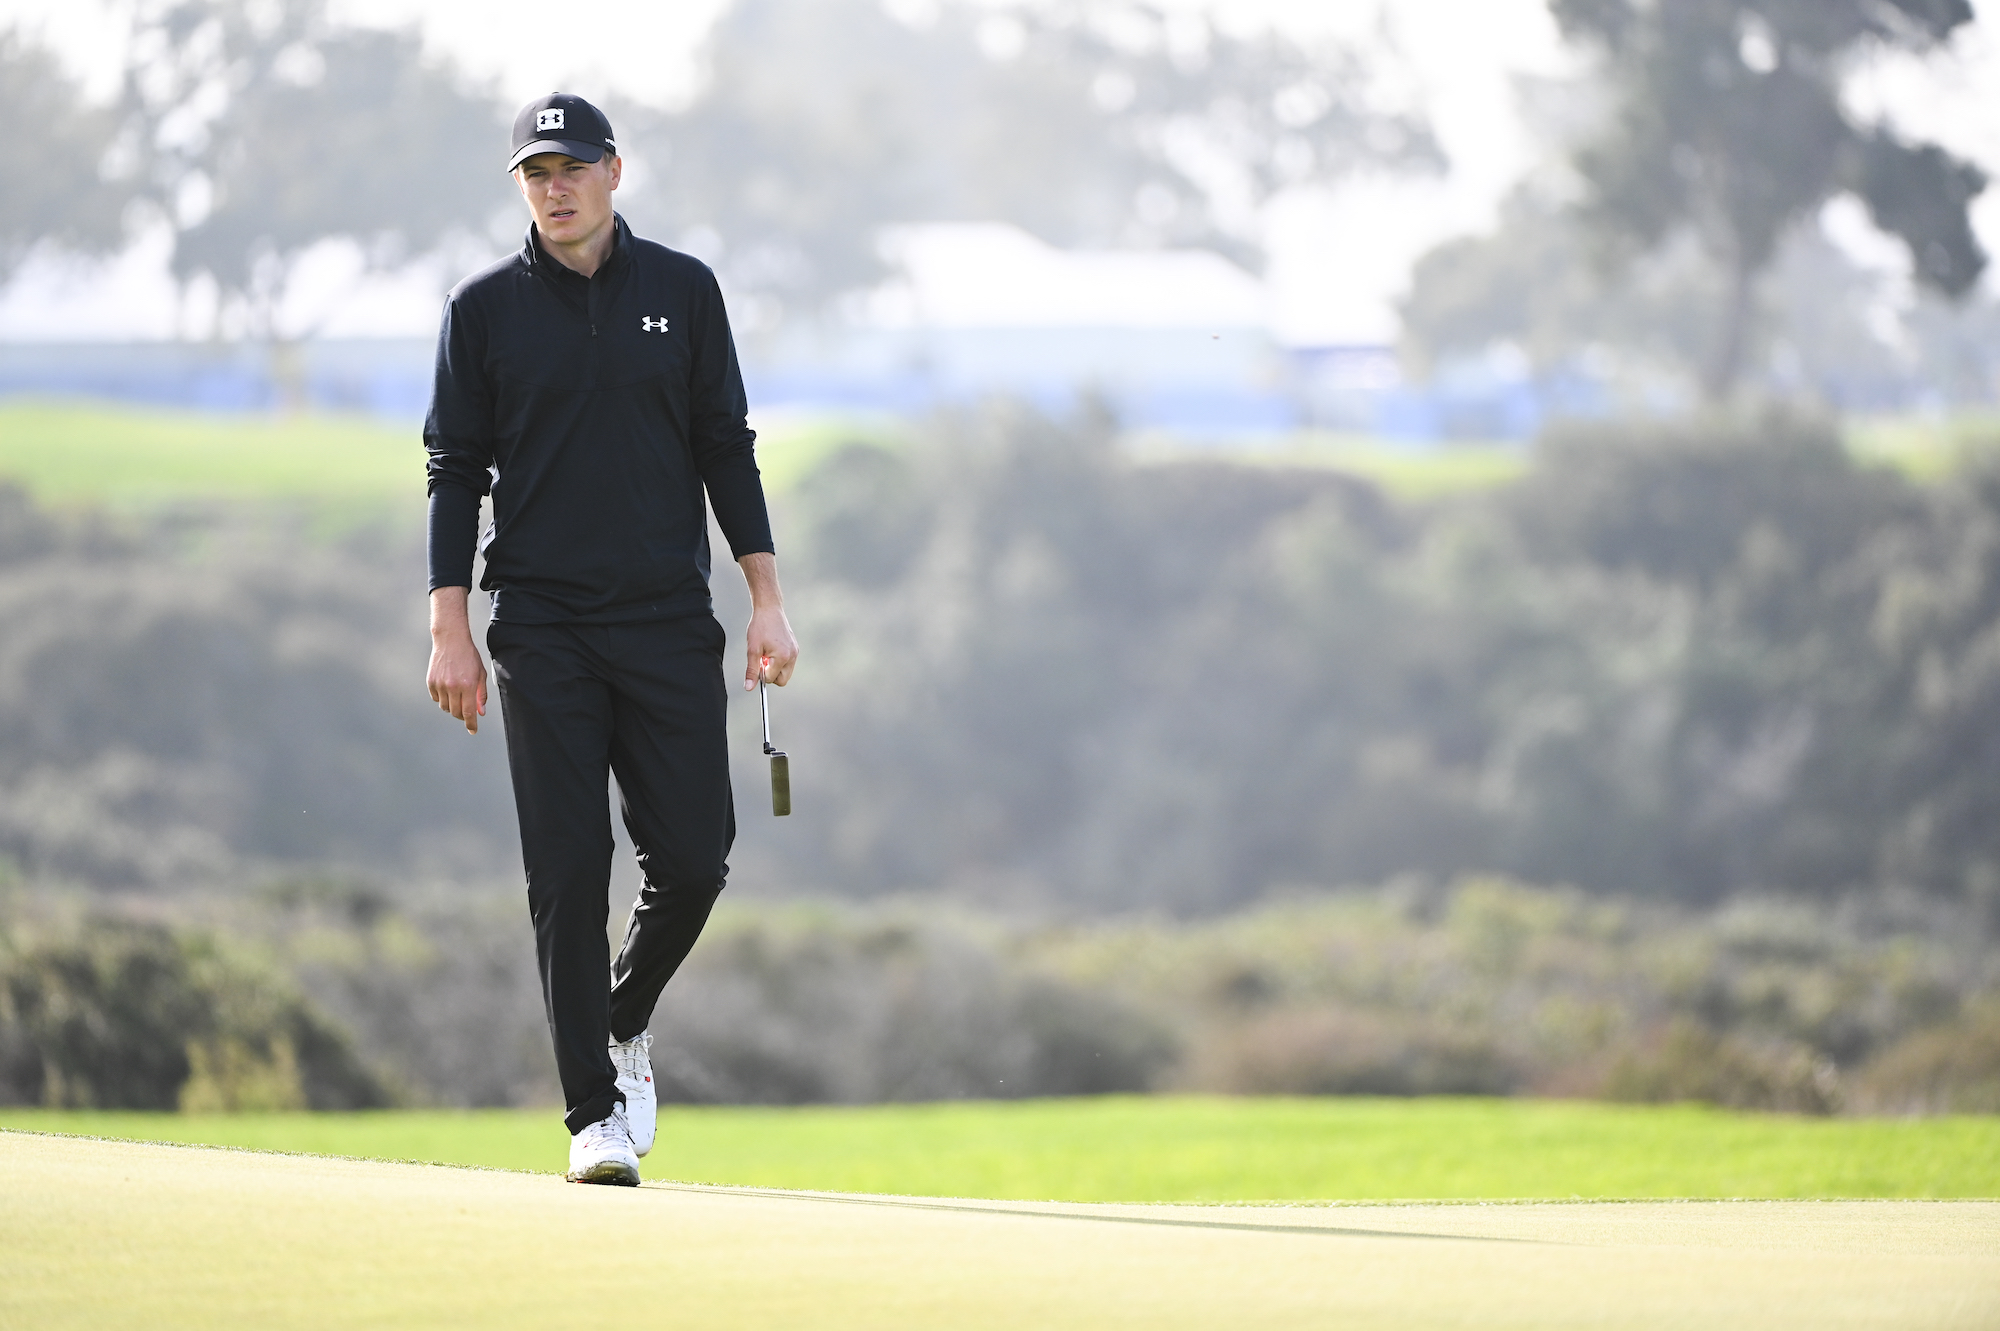 2020 Farmers Insurance Open: Round 2 - Jordan Surveys the Green on No. 13